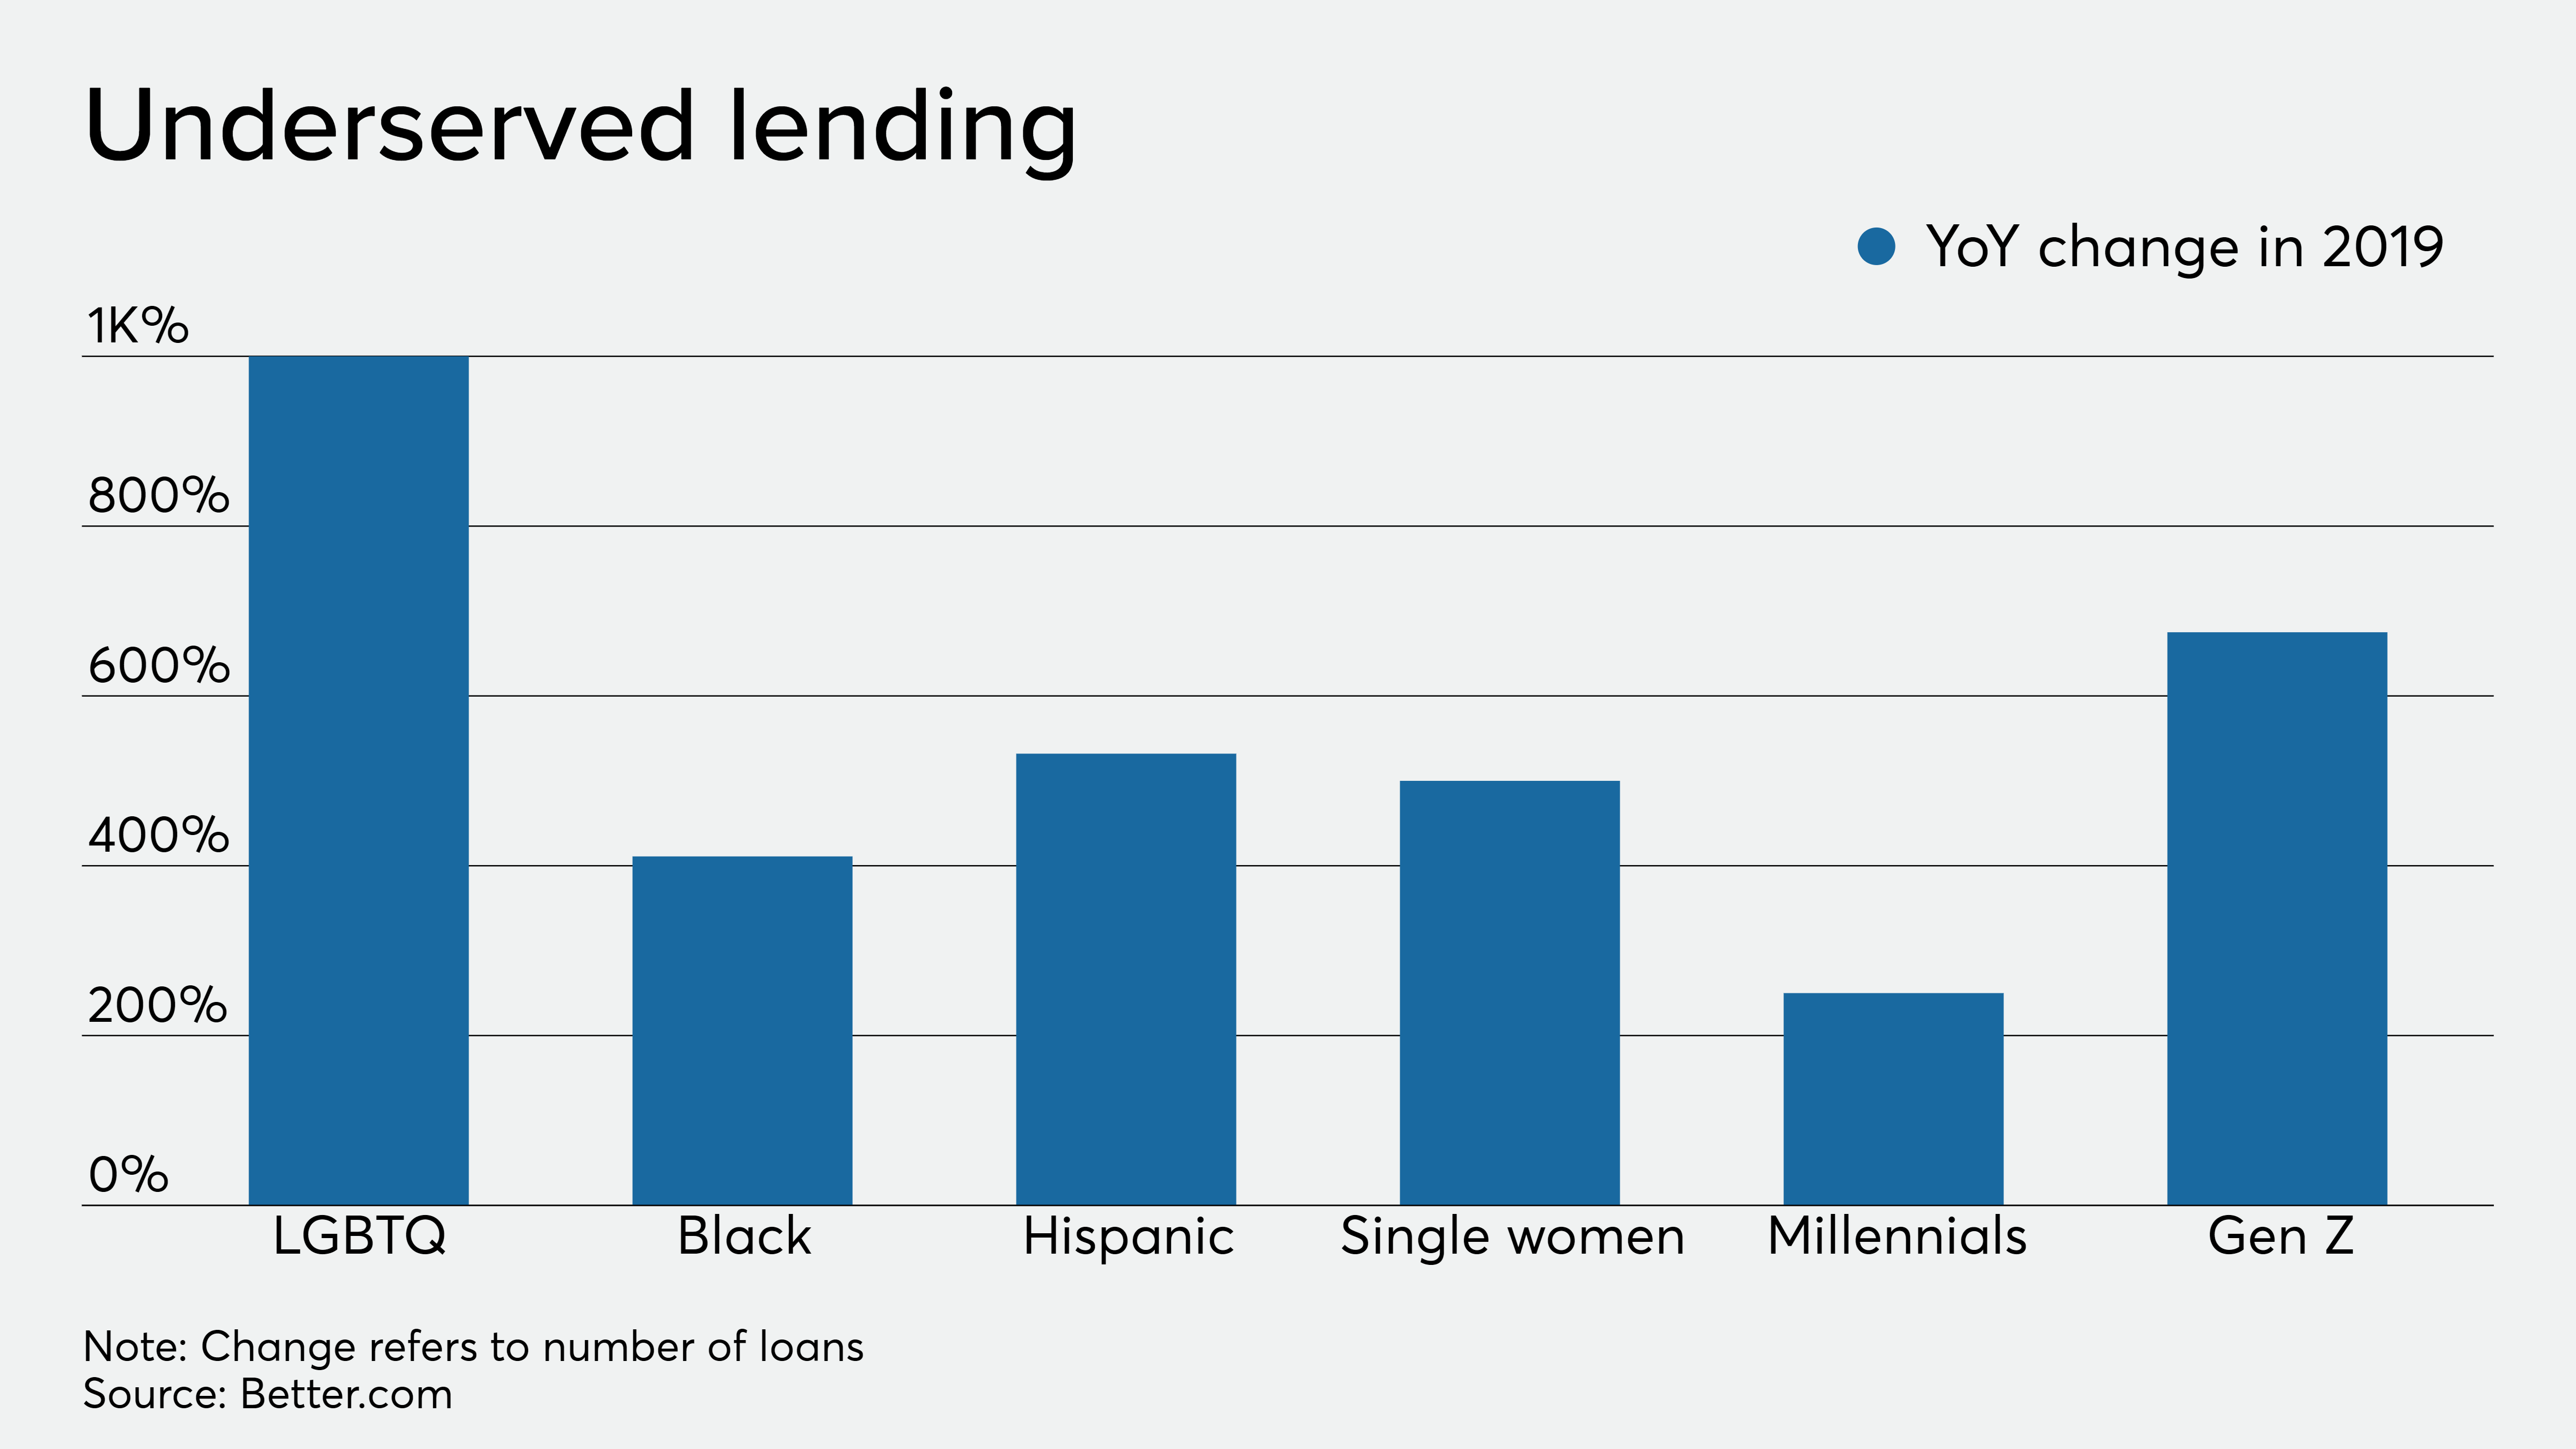 Rise of fintech spurs surge in loans to underserved groups- Better.com